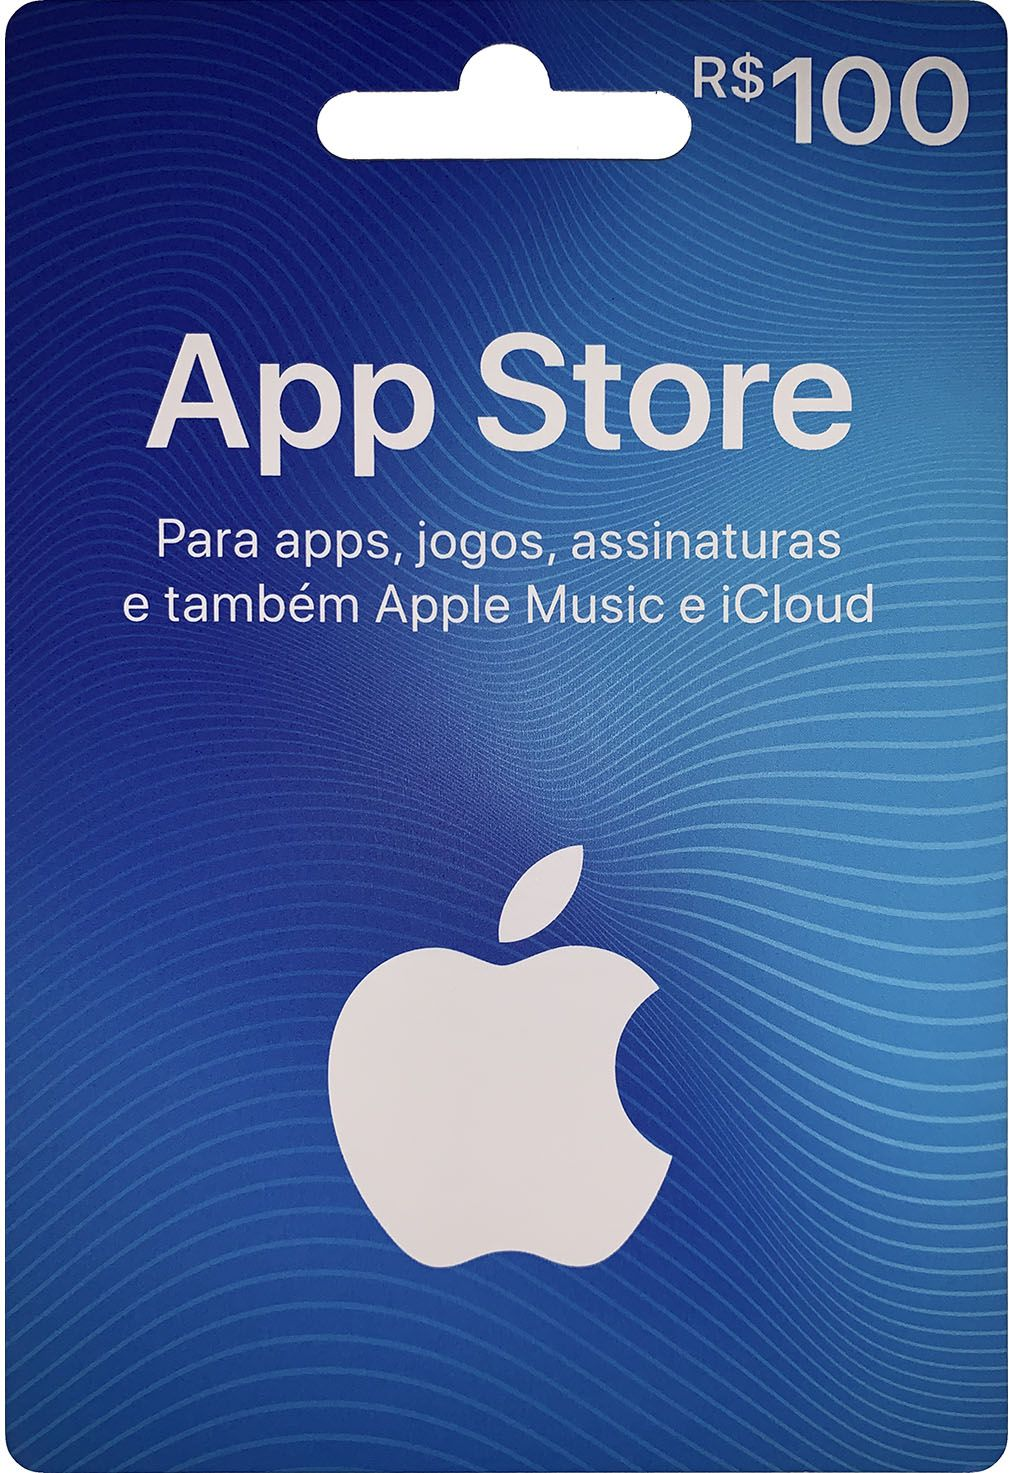 Gift Card Digital App Store R$100